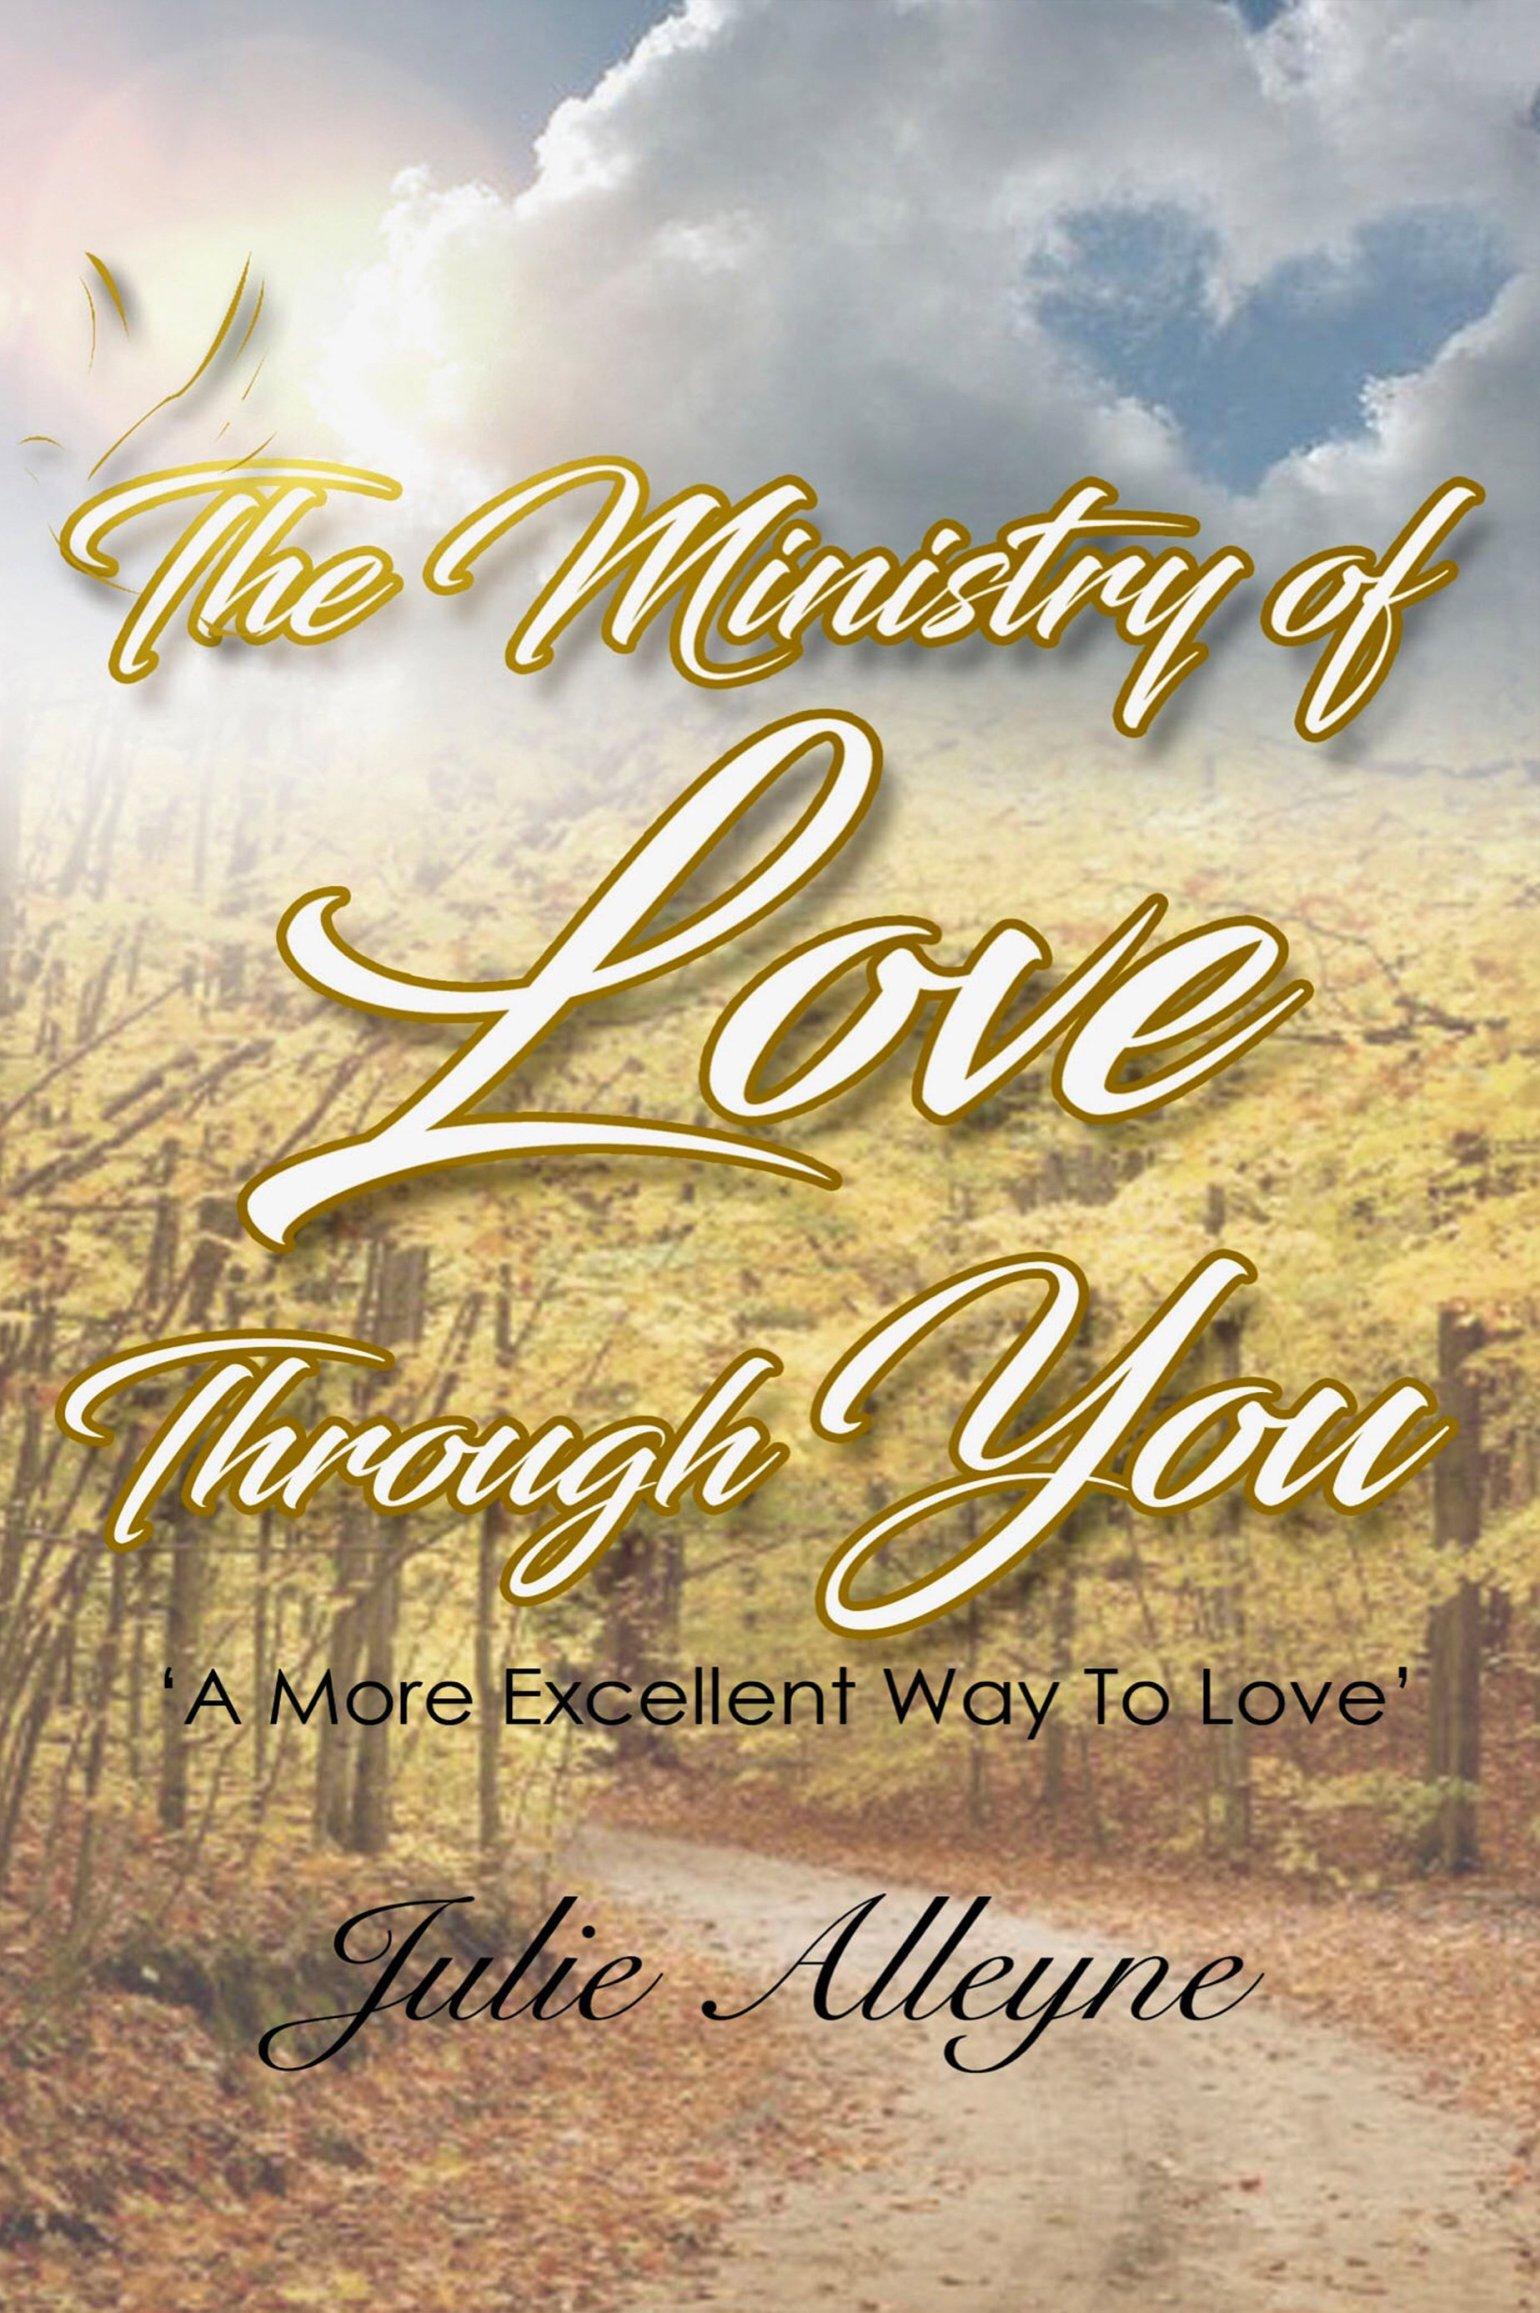 The Ministry of Love Through You by Julie Allyene 978-1642549577